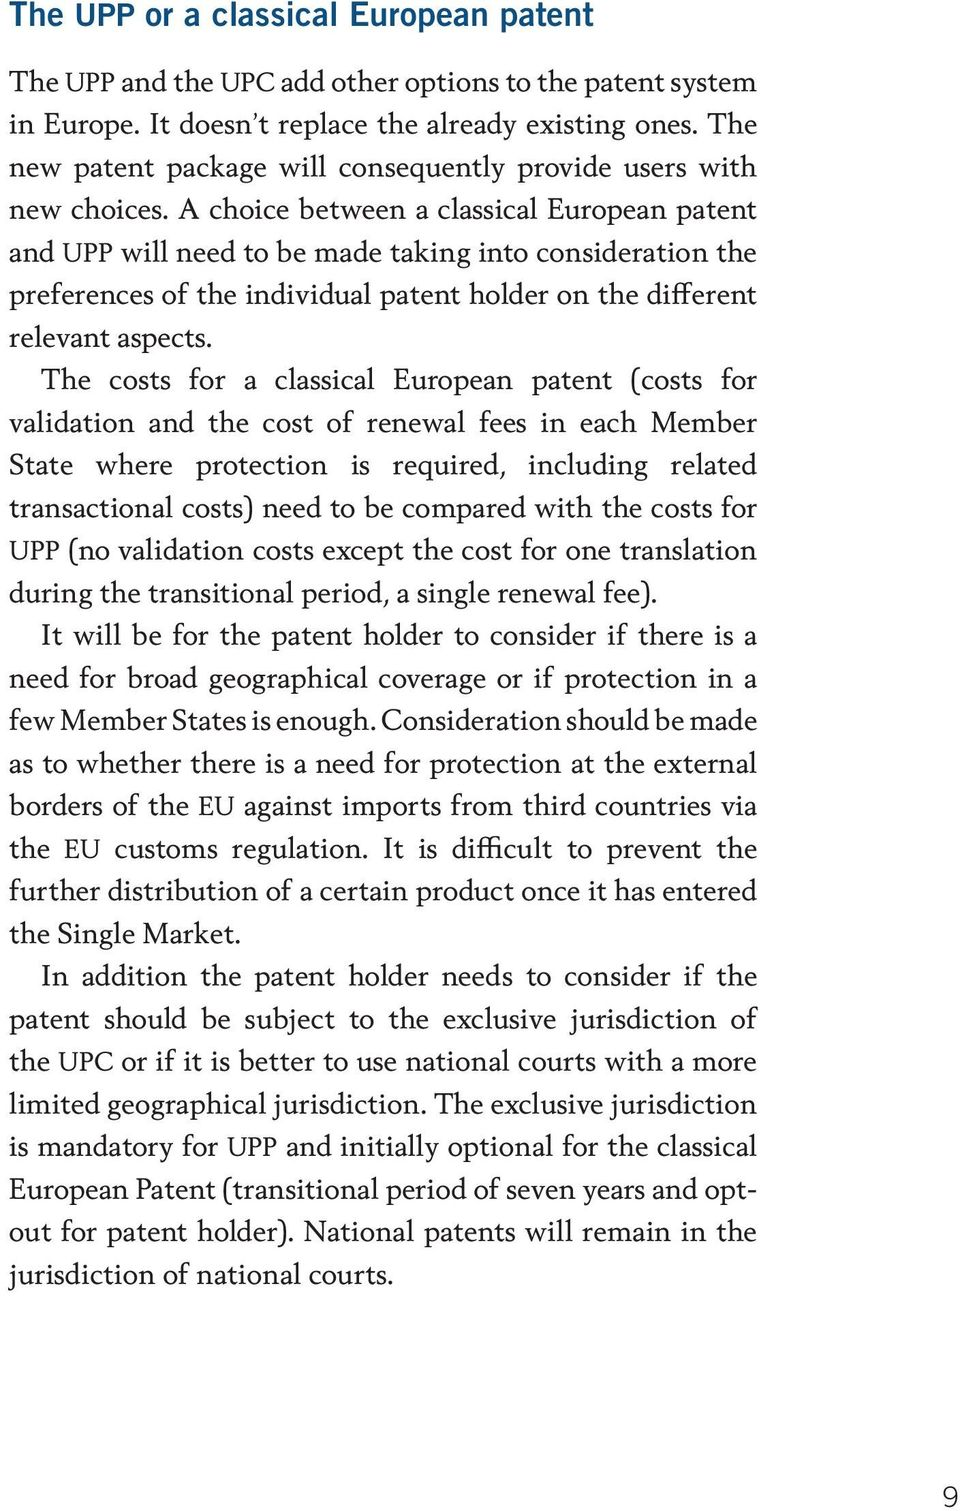 A choice between a classical European patent and UPP will need to be made taking into consideration the preferences of the individual patent holder on the different relevant aspects.